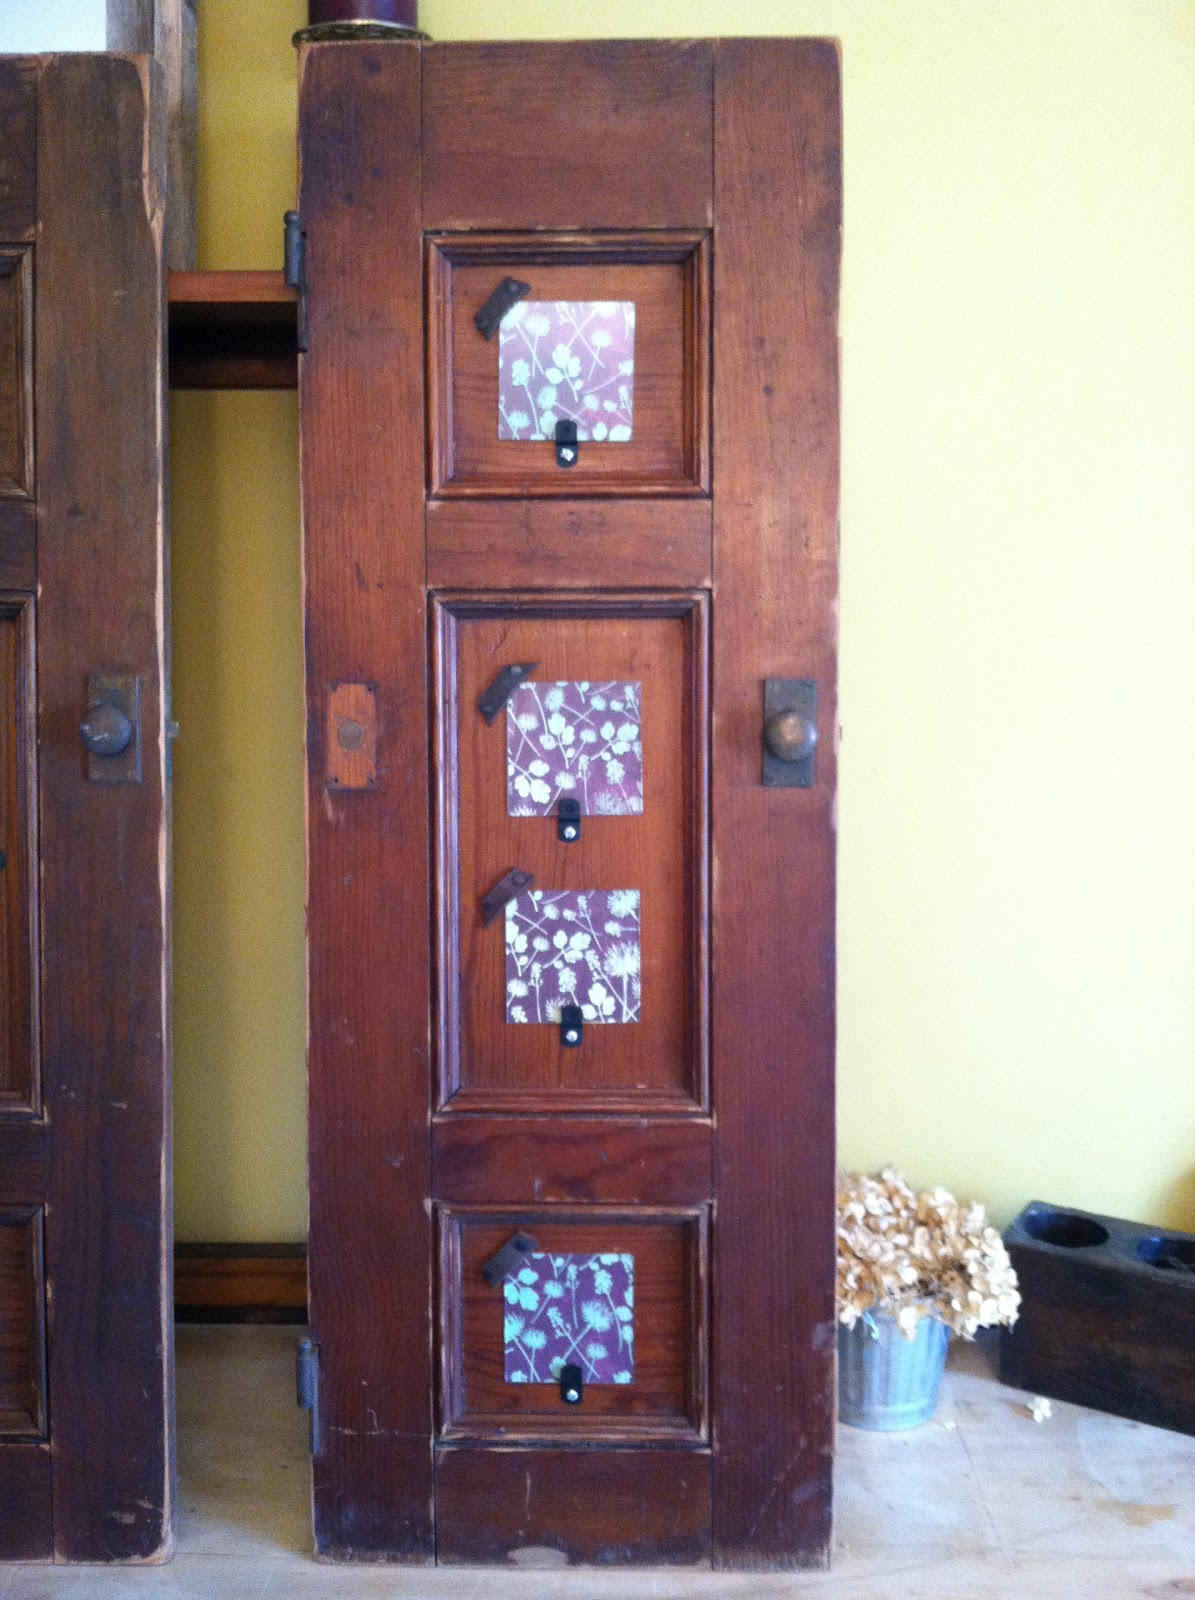 Tx girl 39 n ct antique cabinet doors repurposed into - Cabinet made from old doors ...